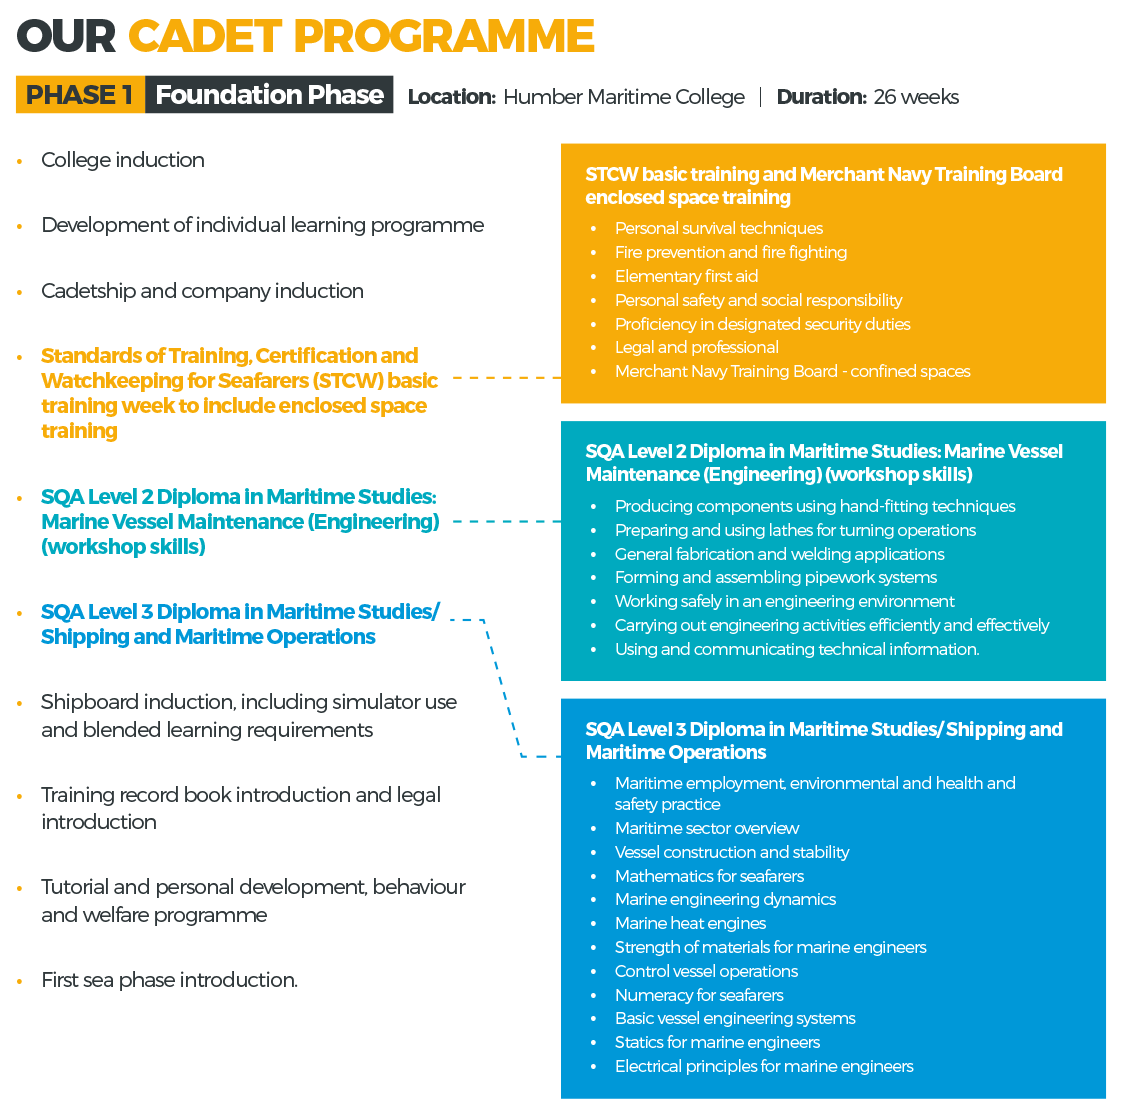 Phase One Engineering Cadet Programme